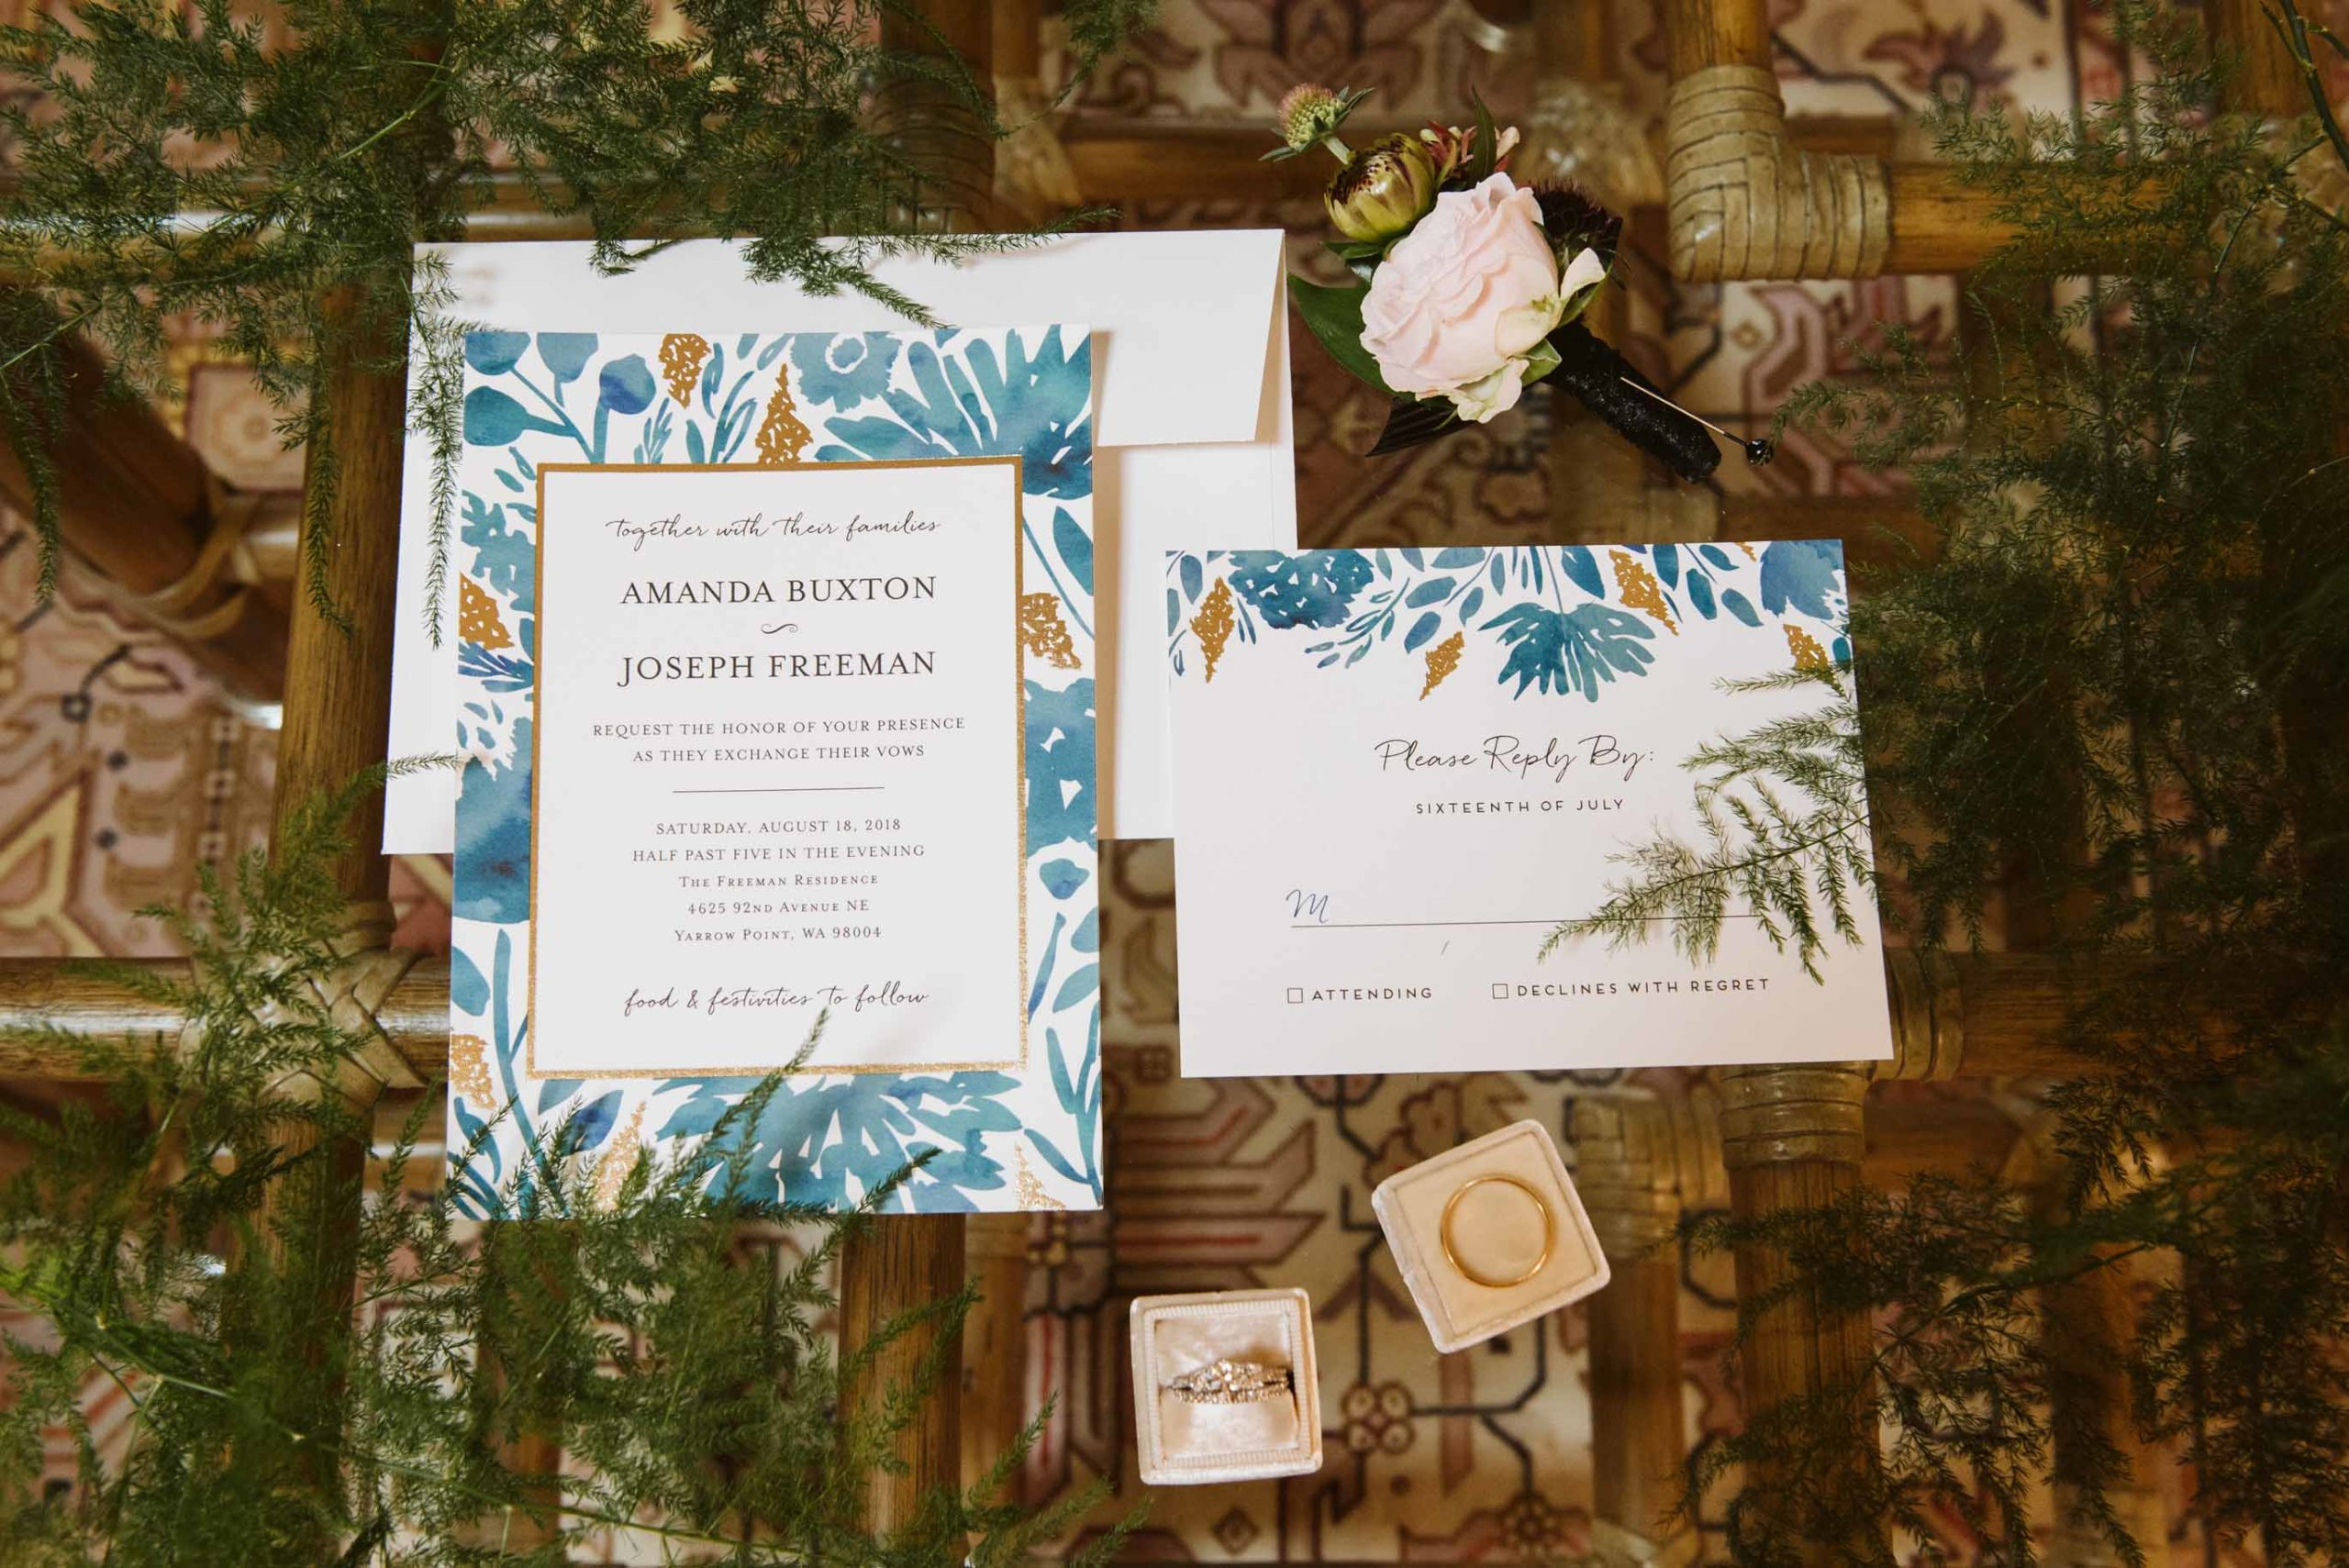 Invitation suite with botanical design in teal and mustard yellow for a backyard wedding.